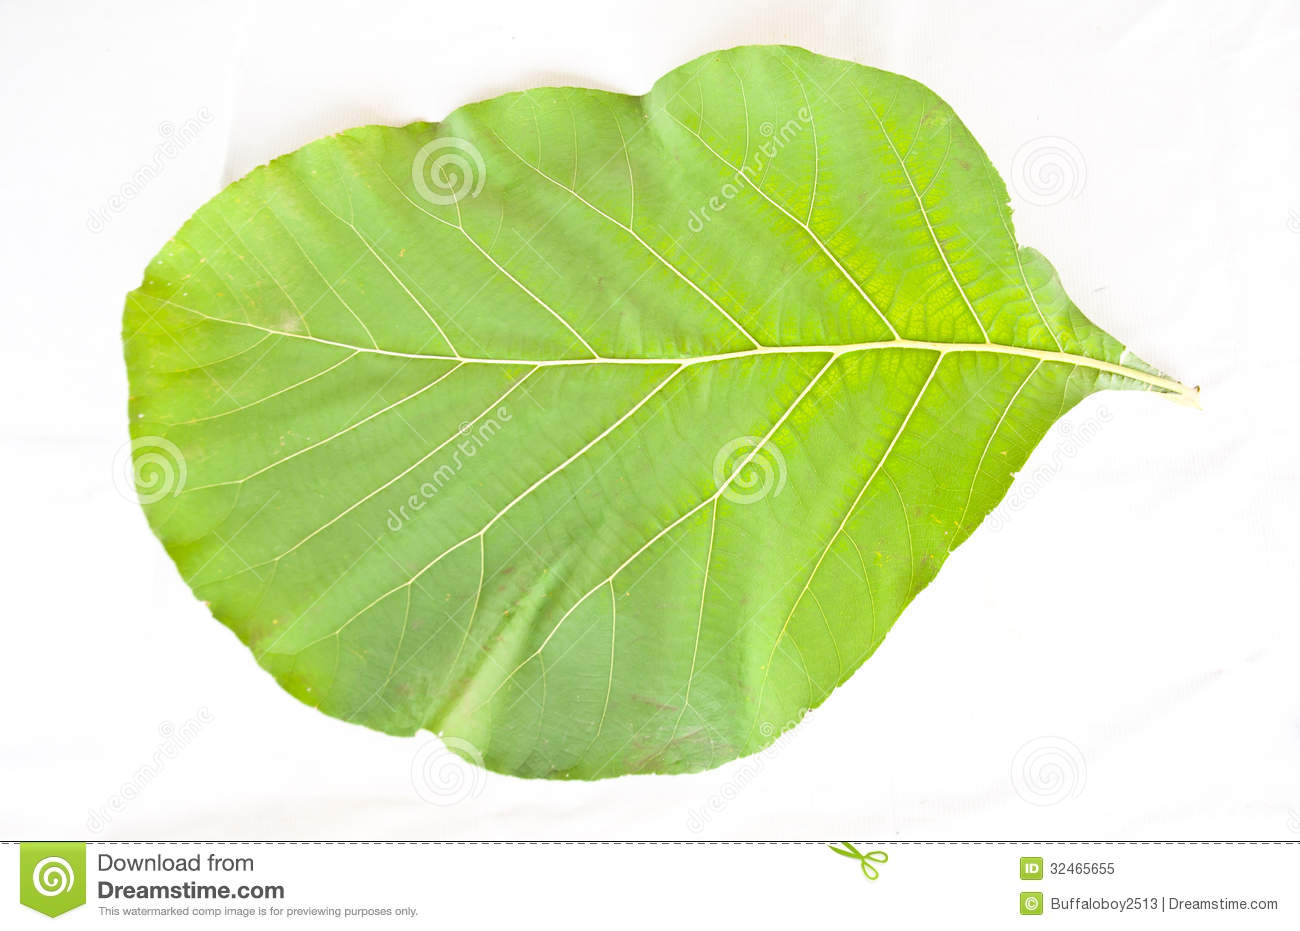 Teak Wood Leaf Stock Photos, Images, & Pictures.